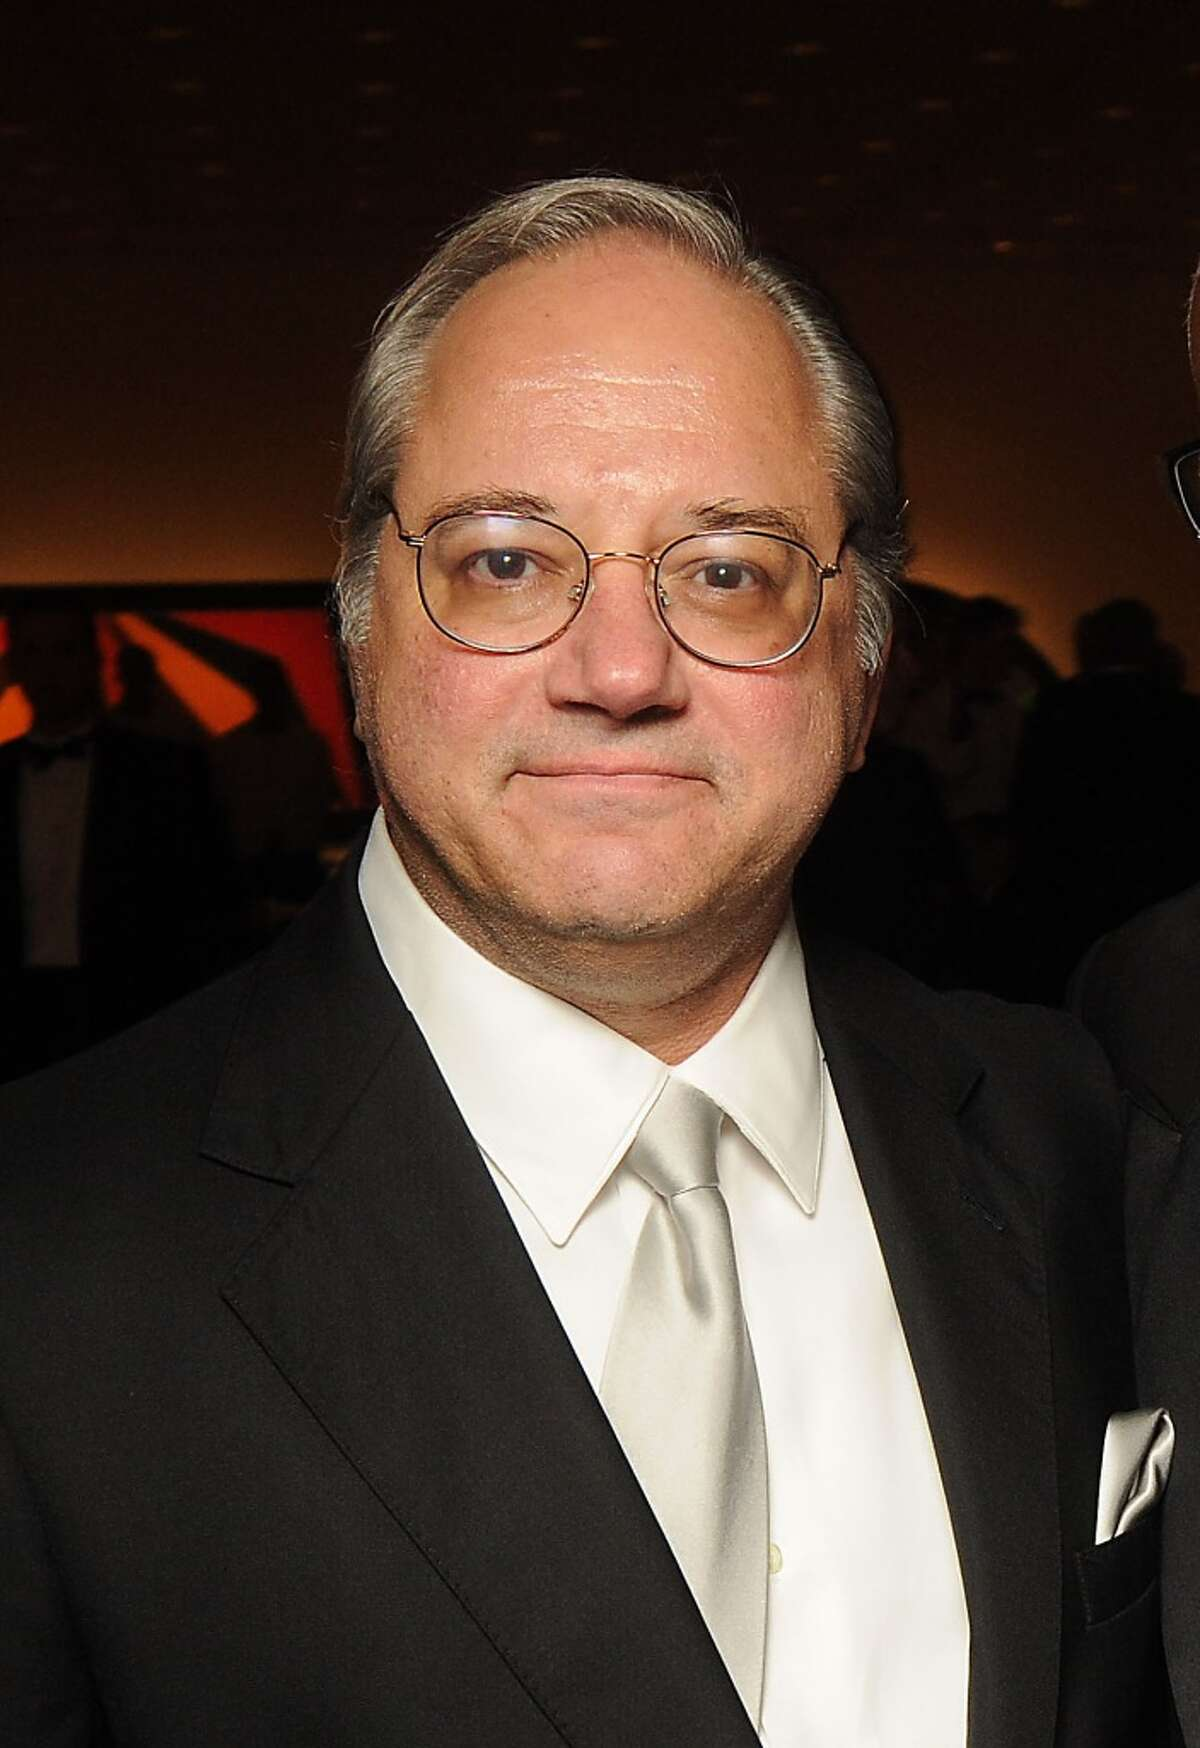 Anthony G. Petrello Chairman of the Board, President and CEO Nabors Industries Ltd. Base Salary $1,580,077 Bonus $6,125,000 Stock awards $16,863,656 Stock options $0 Total compensation $27,663,602